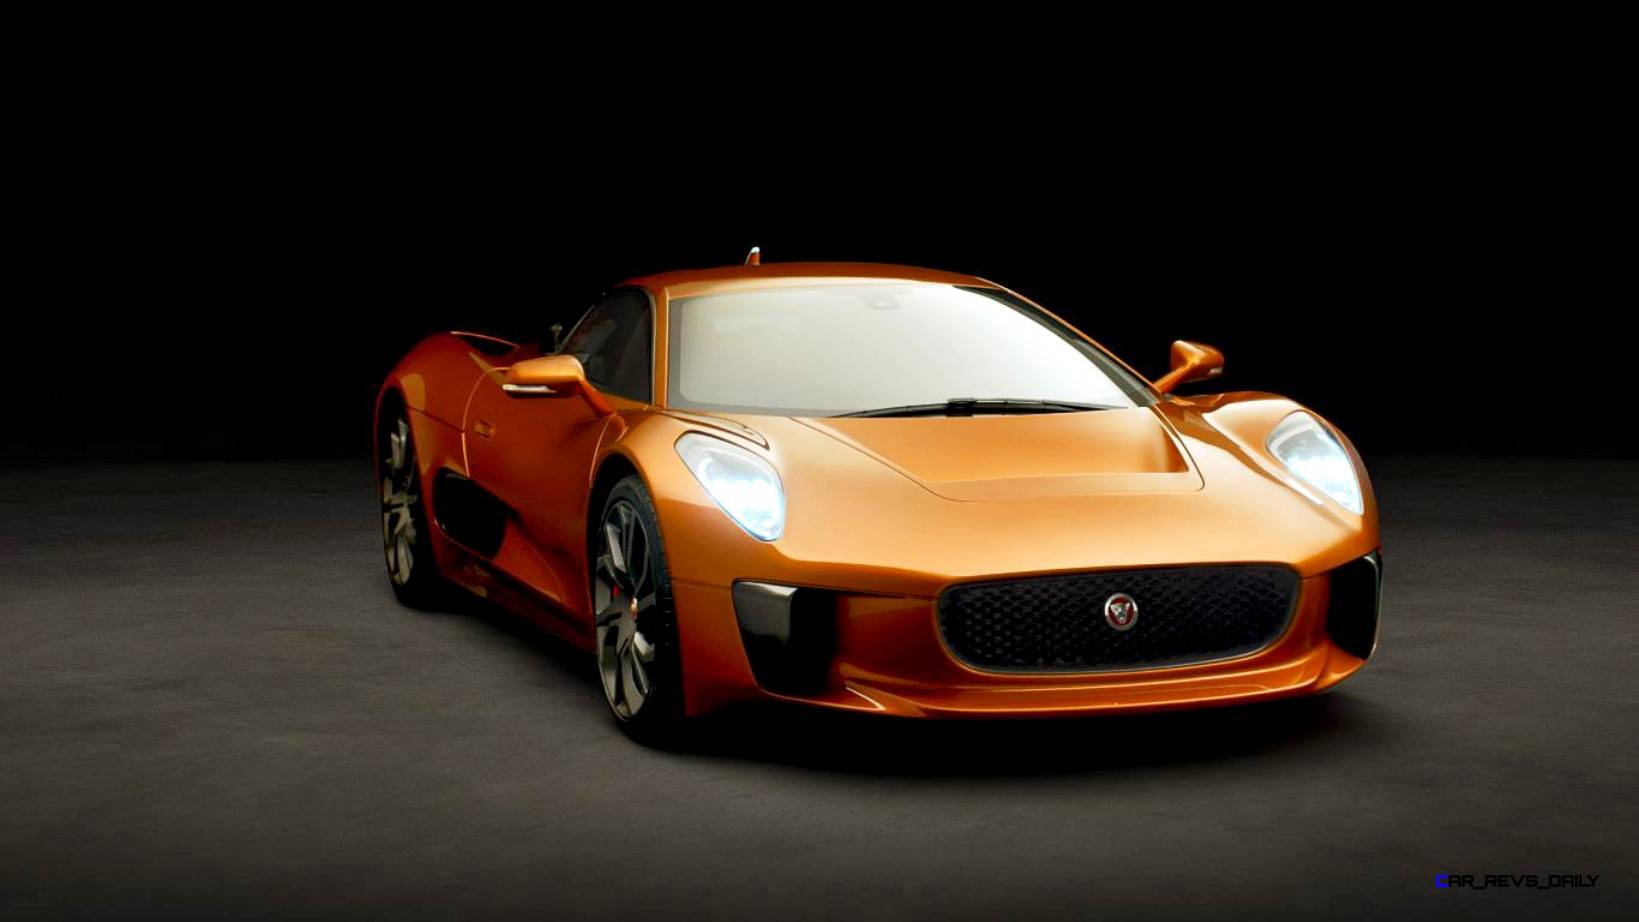 007 spectre bond cars jaguar cx 75 orange 8 click to open largest resolution image publicscrutiny